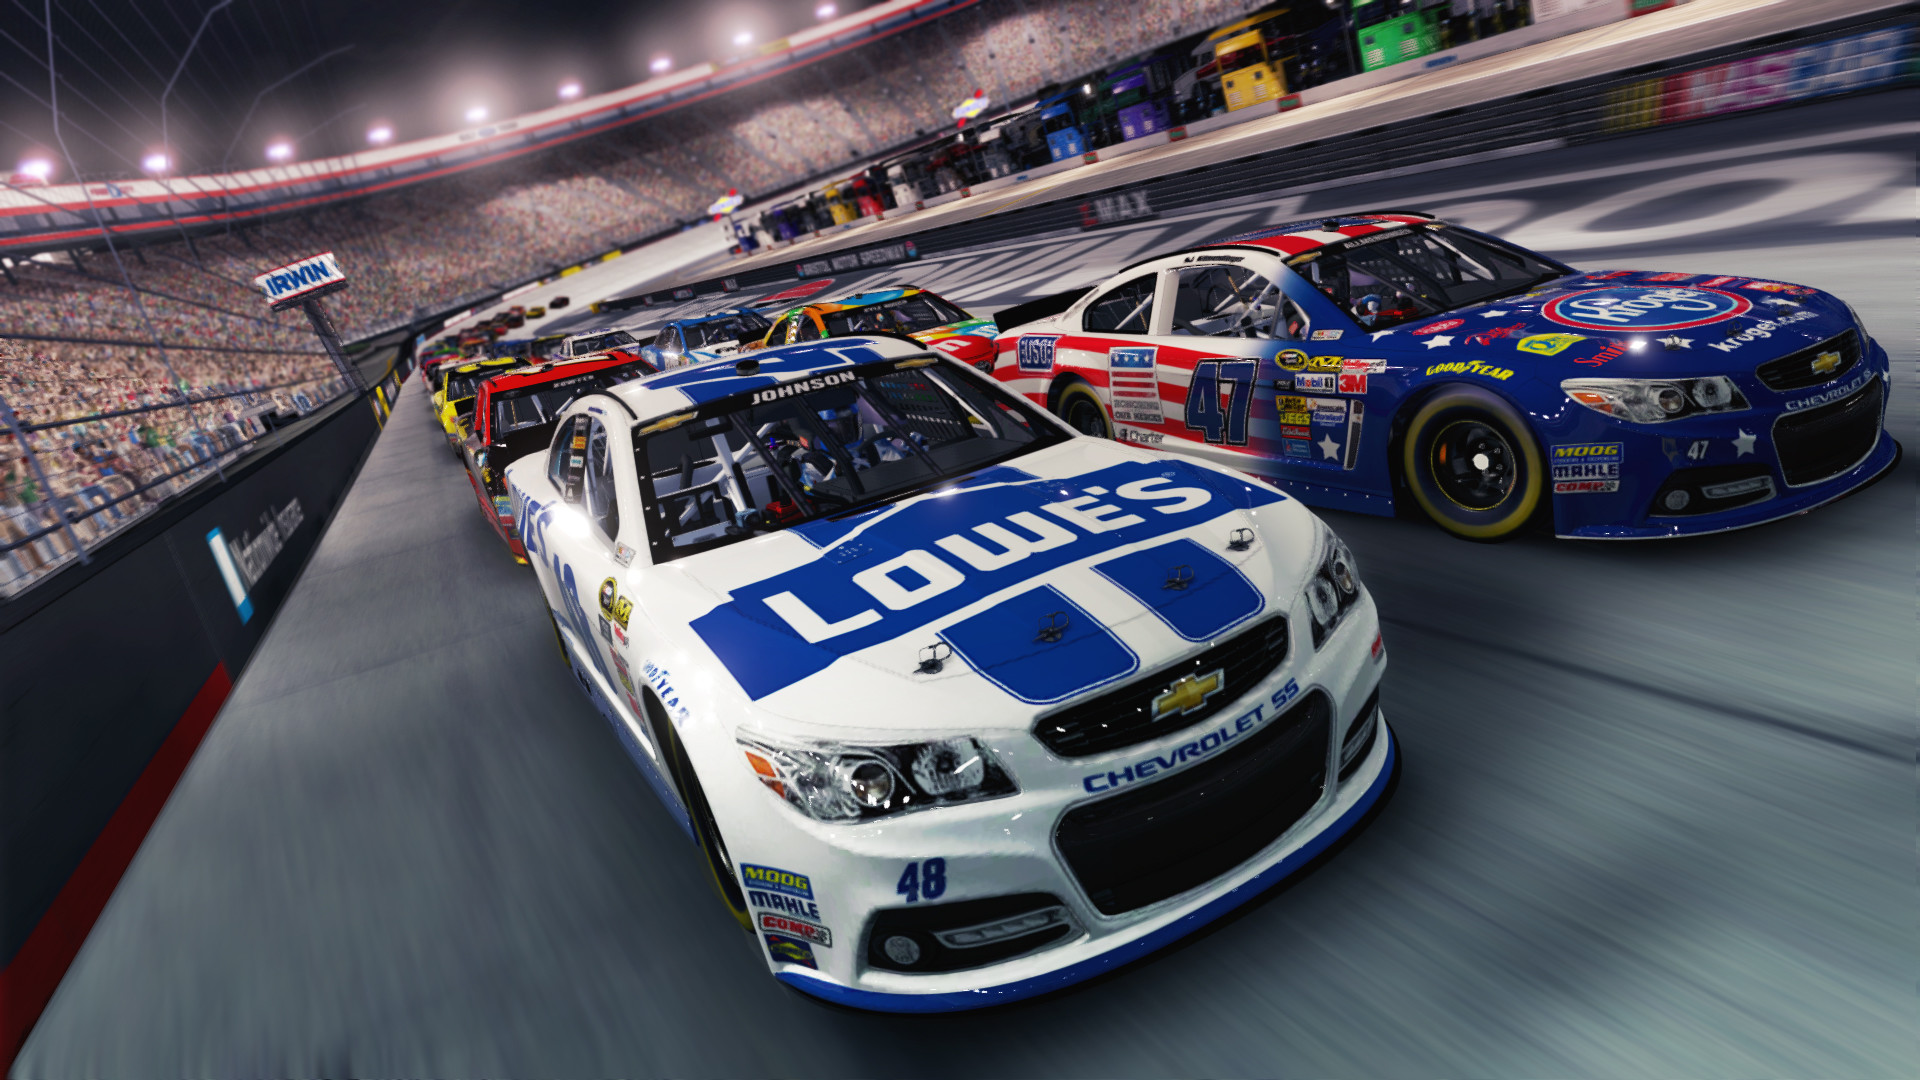 Jimmie johnson wallpapers 64 images - Nascar wallpaper ...